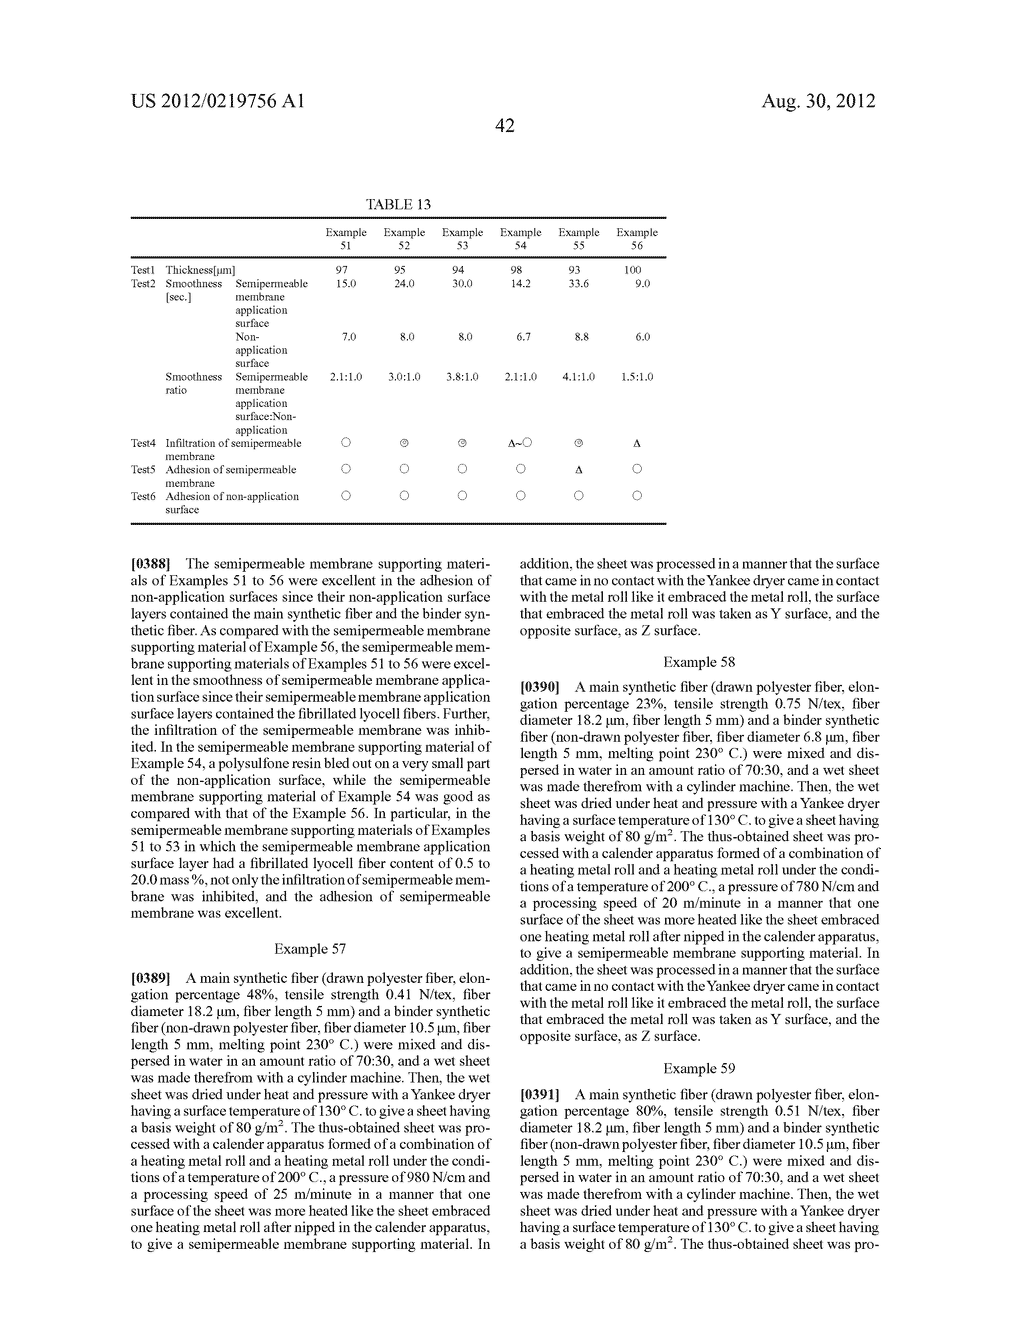 SEMIPERMEABLE MEMBRANE SUPPORTING BODY, SPIRAL-WOUND SEMIPERMEABLE     MEMBRANE ELEMENT, AND METHOD FOR PRODUCING SEMIPERMEABLE MEMBRANE     SUPPORTING BODY - diagram, schematic, and image 50